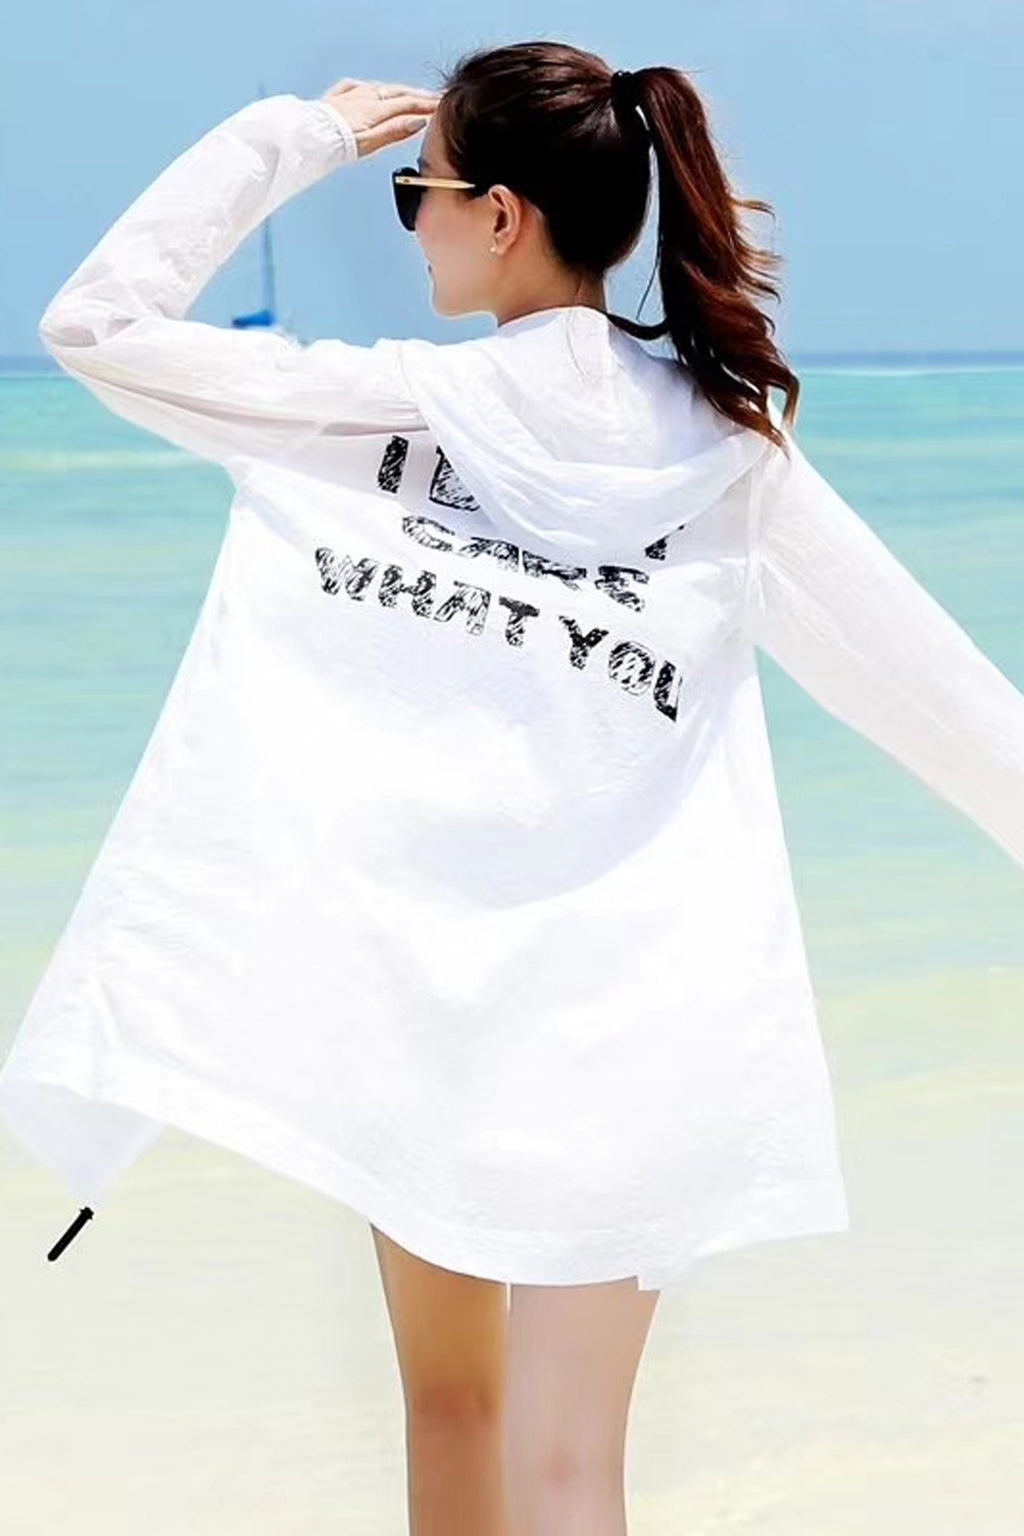 Girly UV/Sun Protection Hoodie Zip Jacket #19102